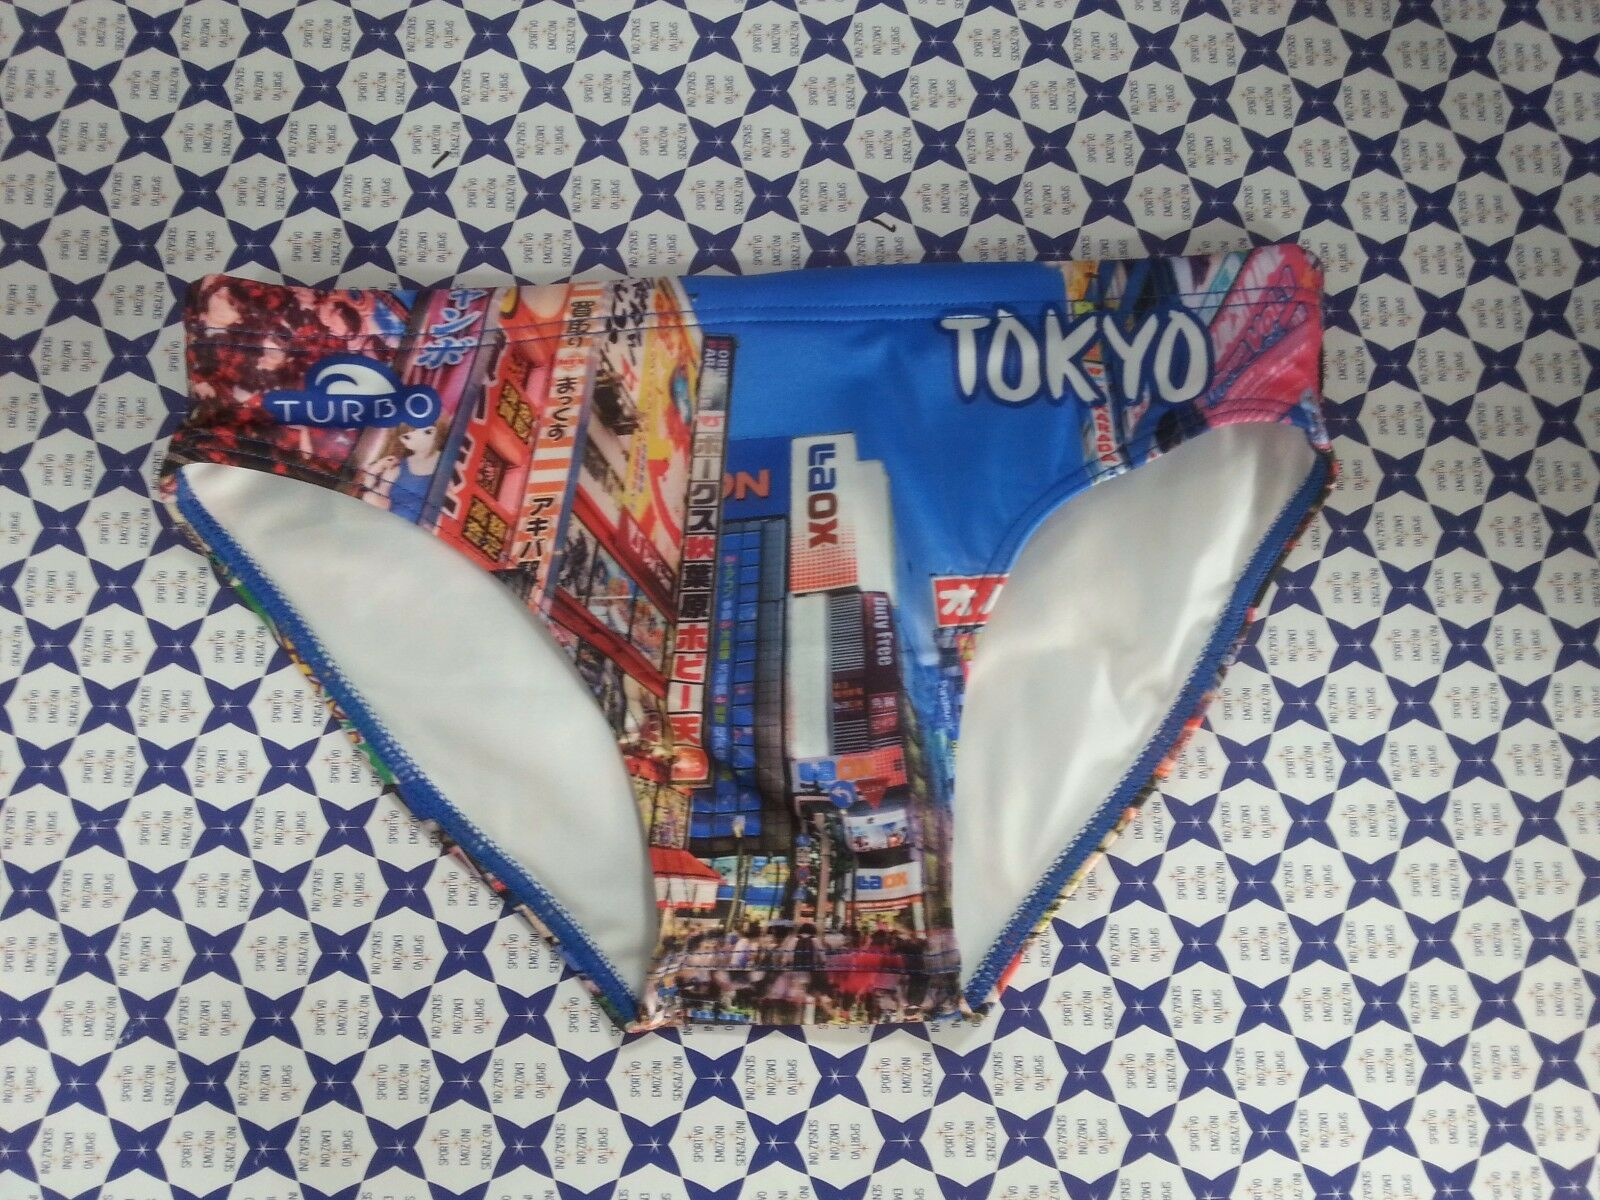 Costumi Piscina Turbo Costume Slip Turbo Tokyo City Mare Pallanuoto Piscina Pallanuoto